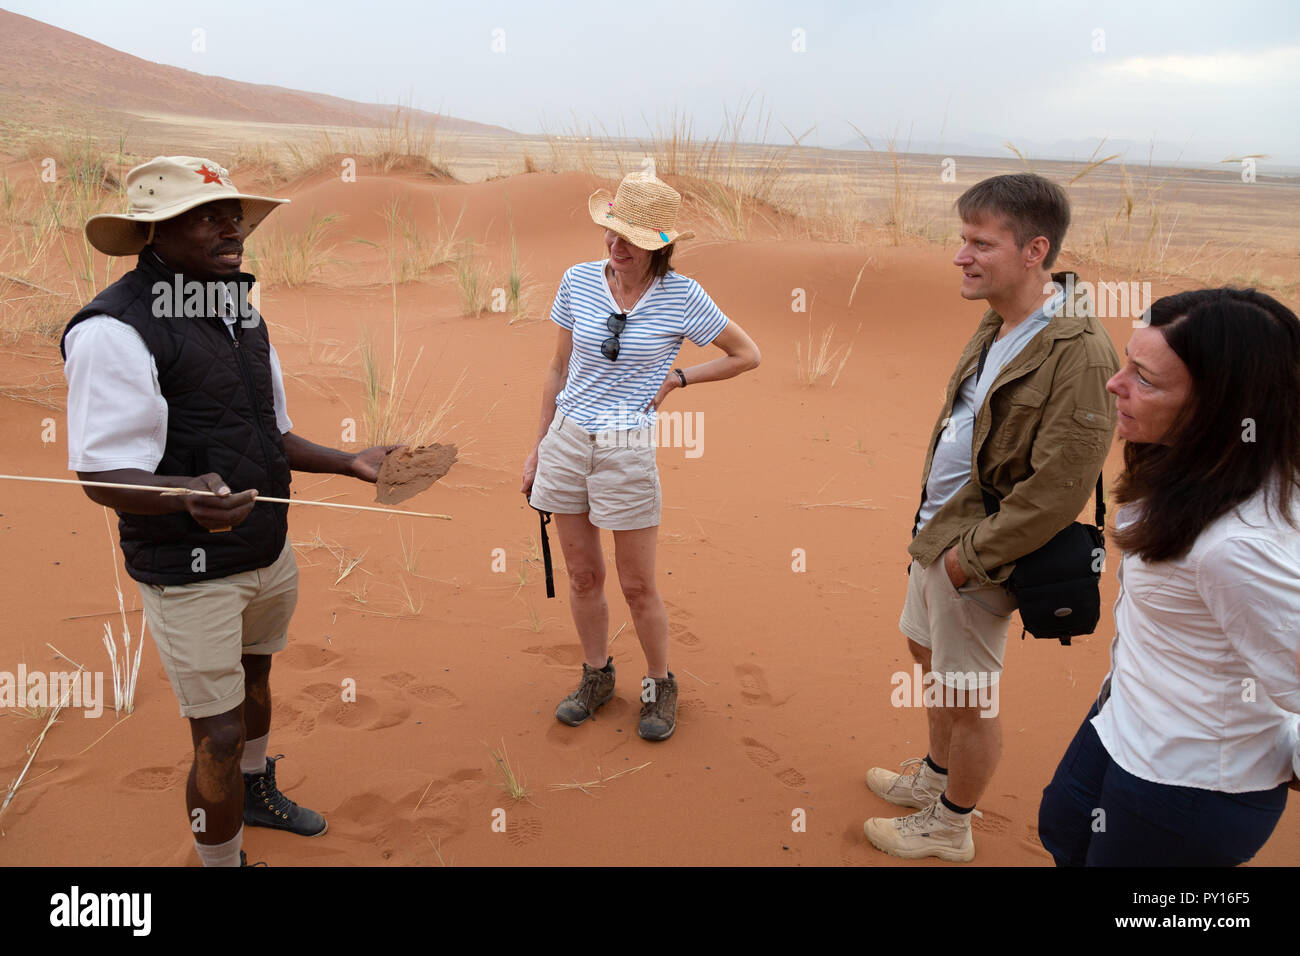 Namibia tourism - tourists and their tour guide on a guided tour, Namib Desert, Namib Naukluft National Park, Sossusvlei, Namibia Africa - Stock Image